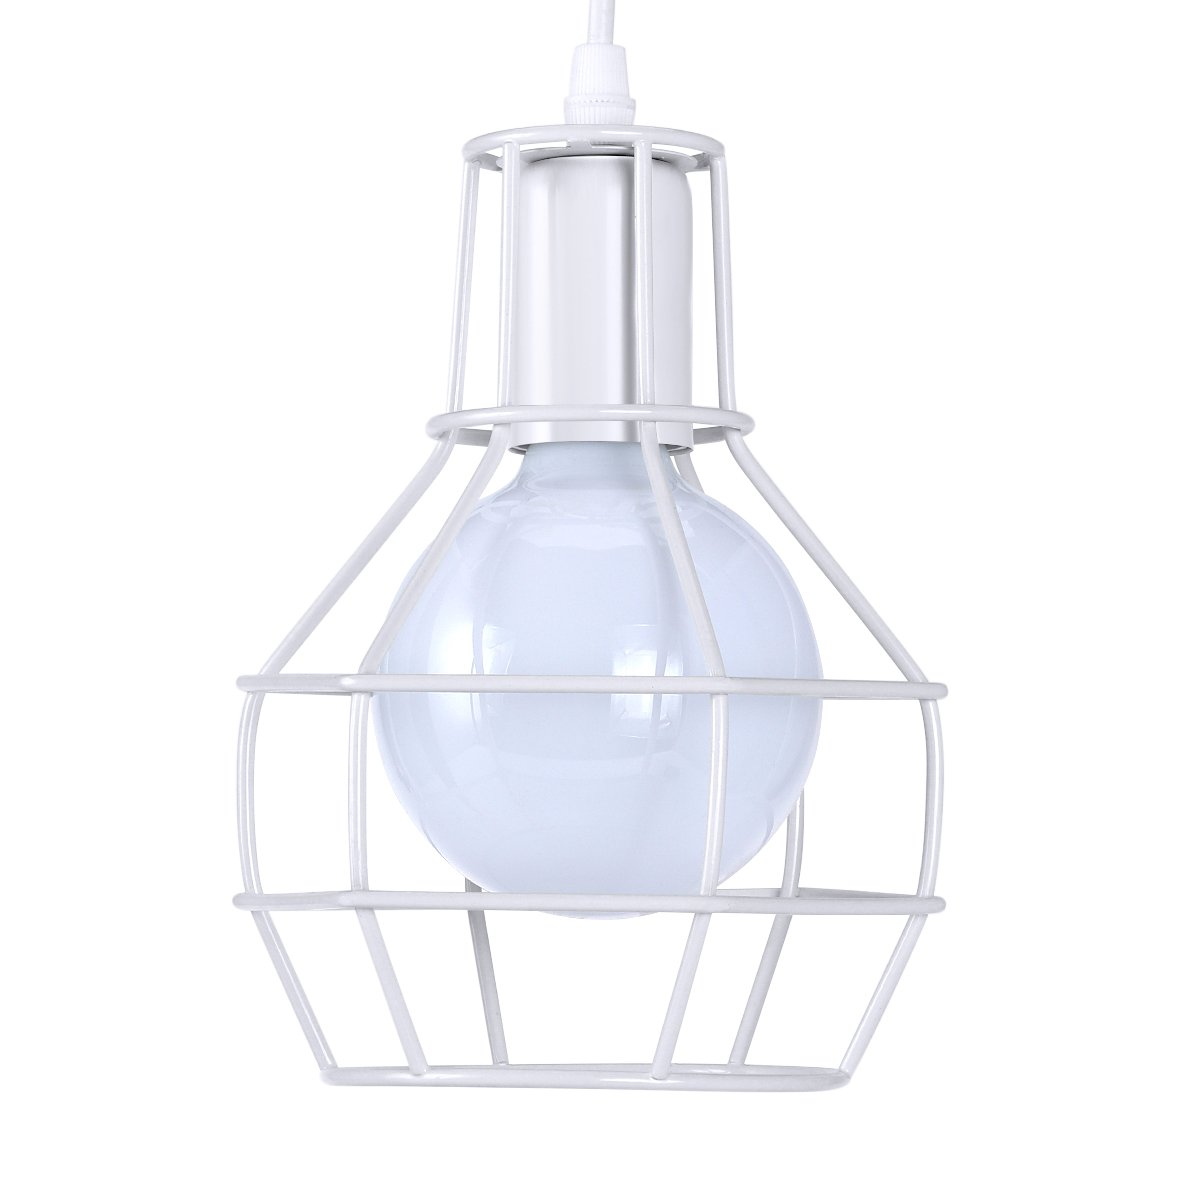 KAWELL Creative Vintage Pendant Light Industrial Retro Chandelier E26/E27 Bulb Base Metal Net Cage for Kitchen, Bedroom,Cafe, Restaurant,Bar, Picture Display (White)